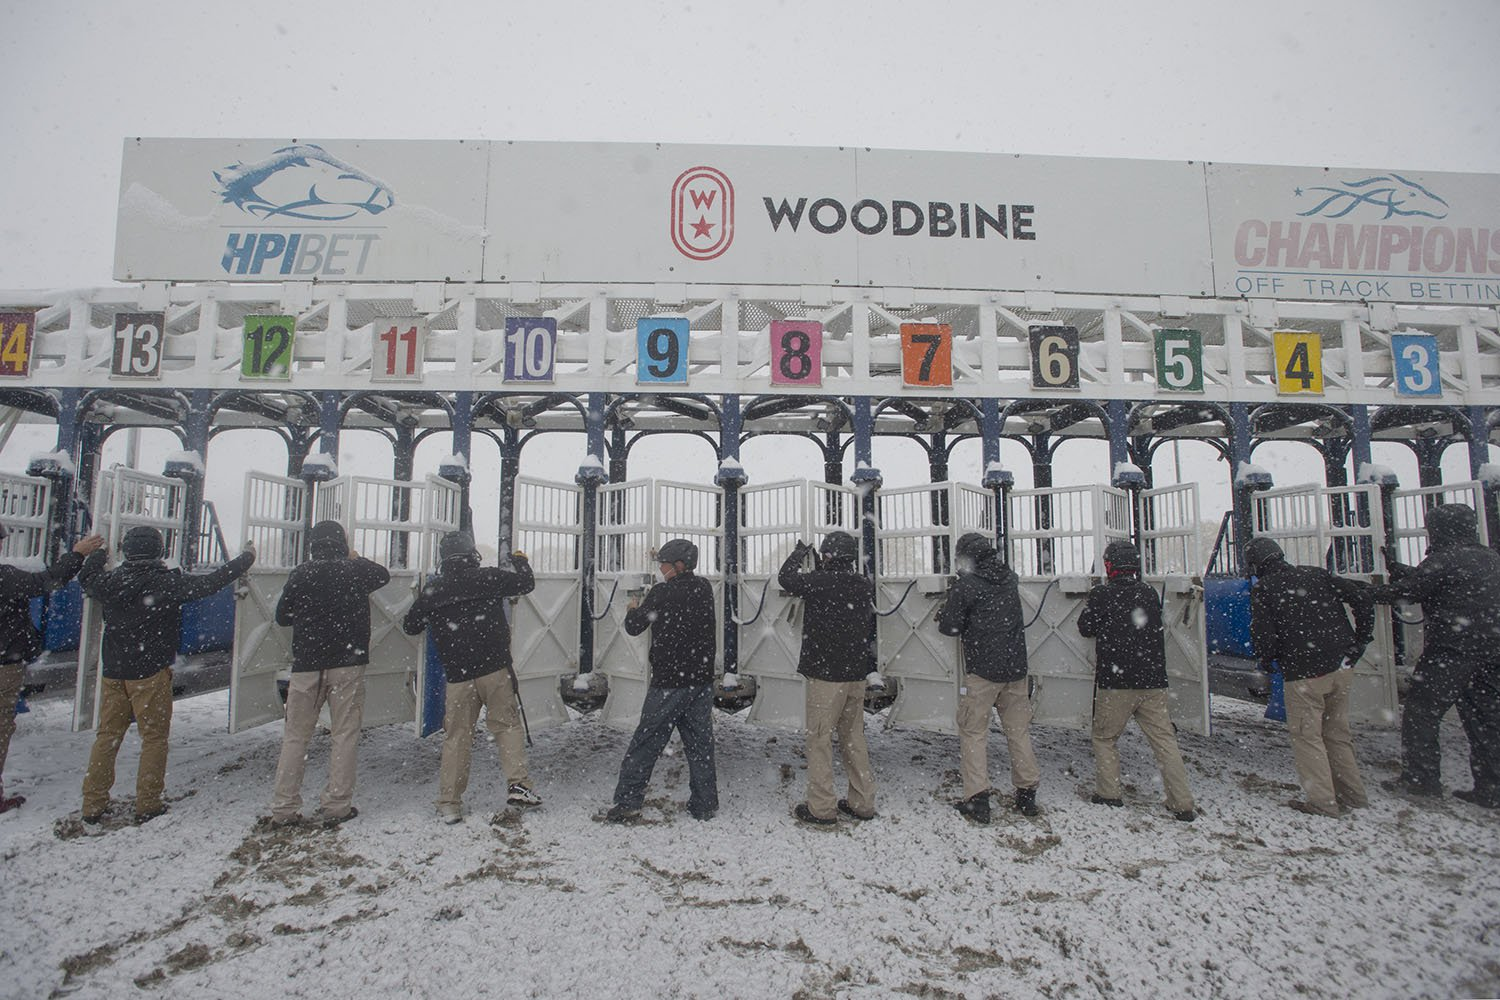 The Woodbine gate crew close the starting gate on the final day of the Thoroughbred race meet at Woodbine Racetrack. (Michael Burns Photo)